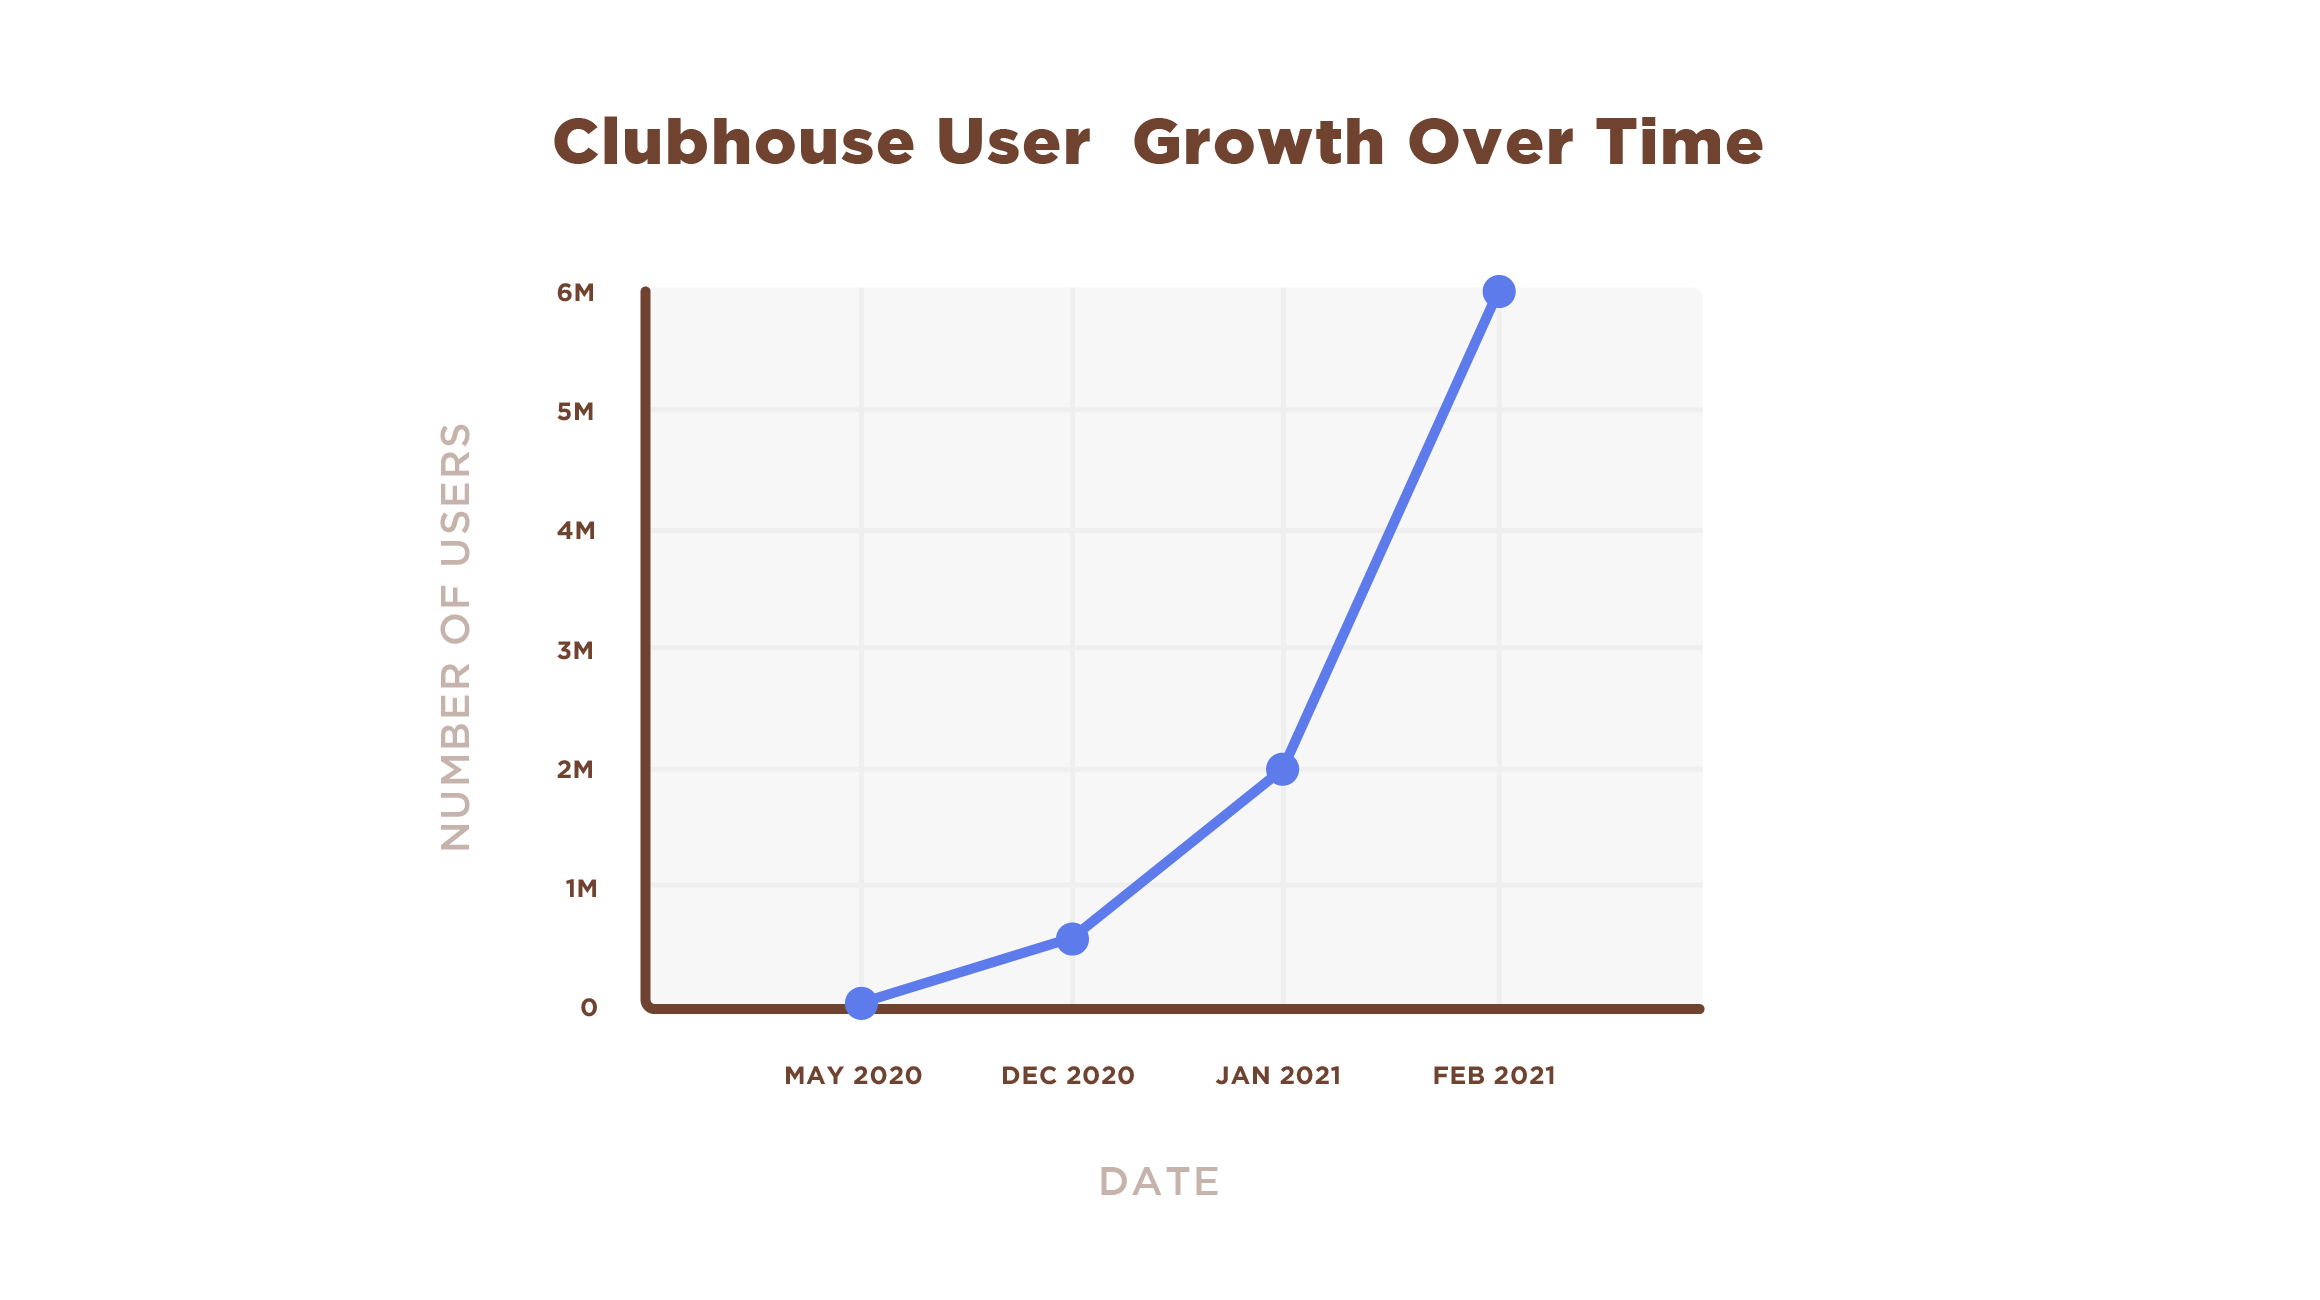 Clubhouse user growth over time chart